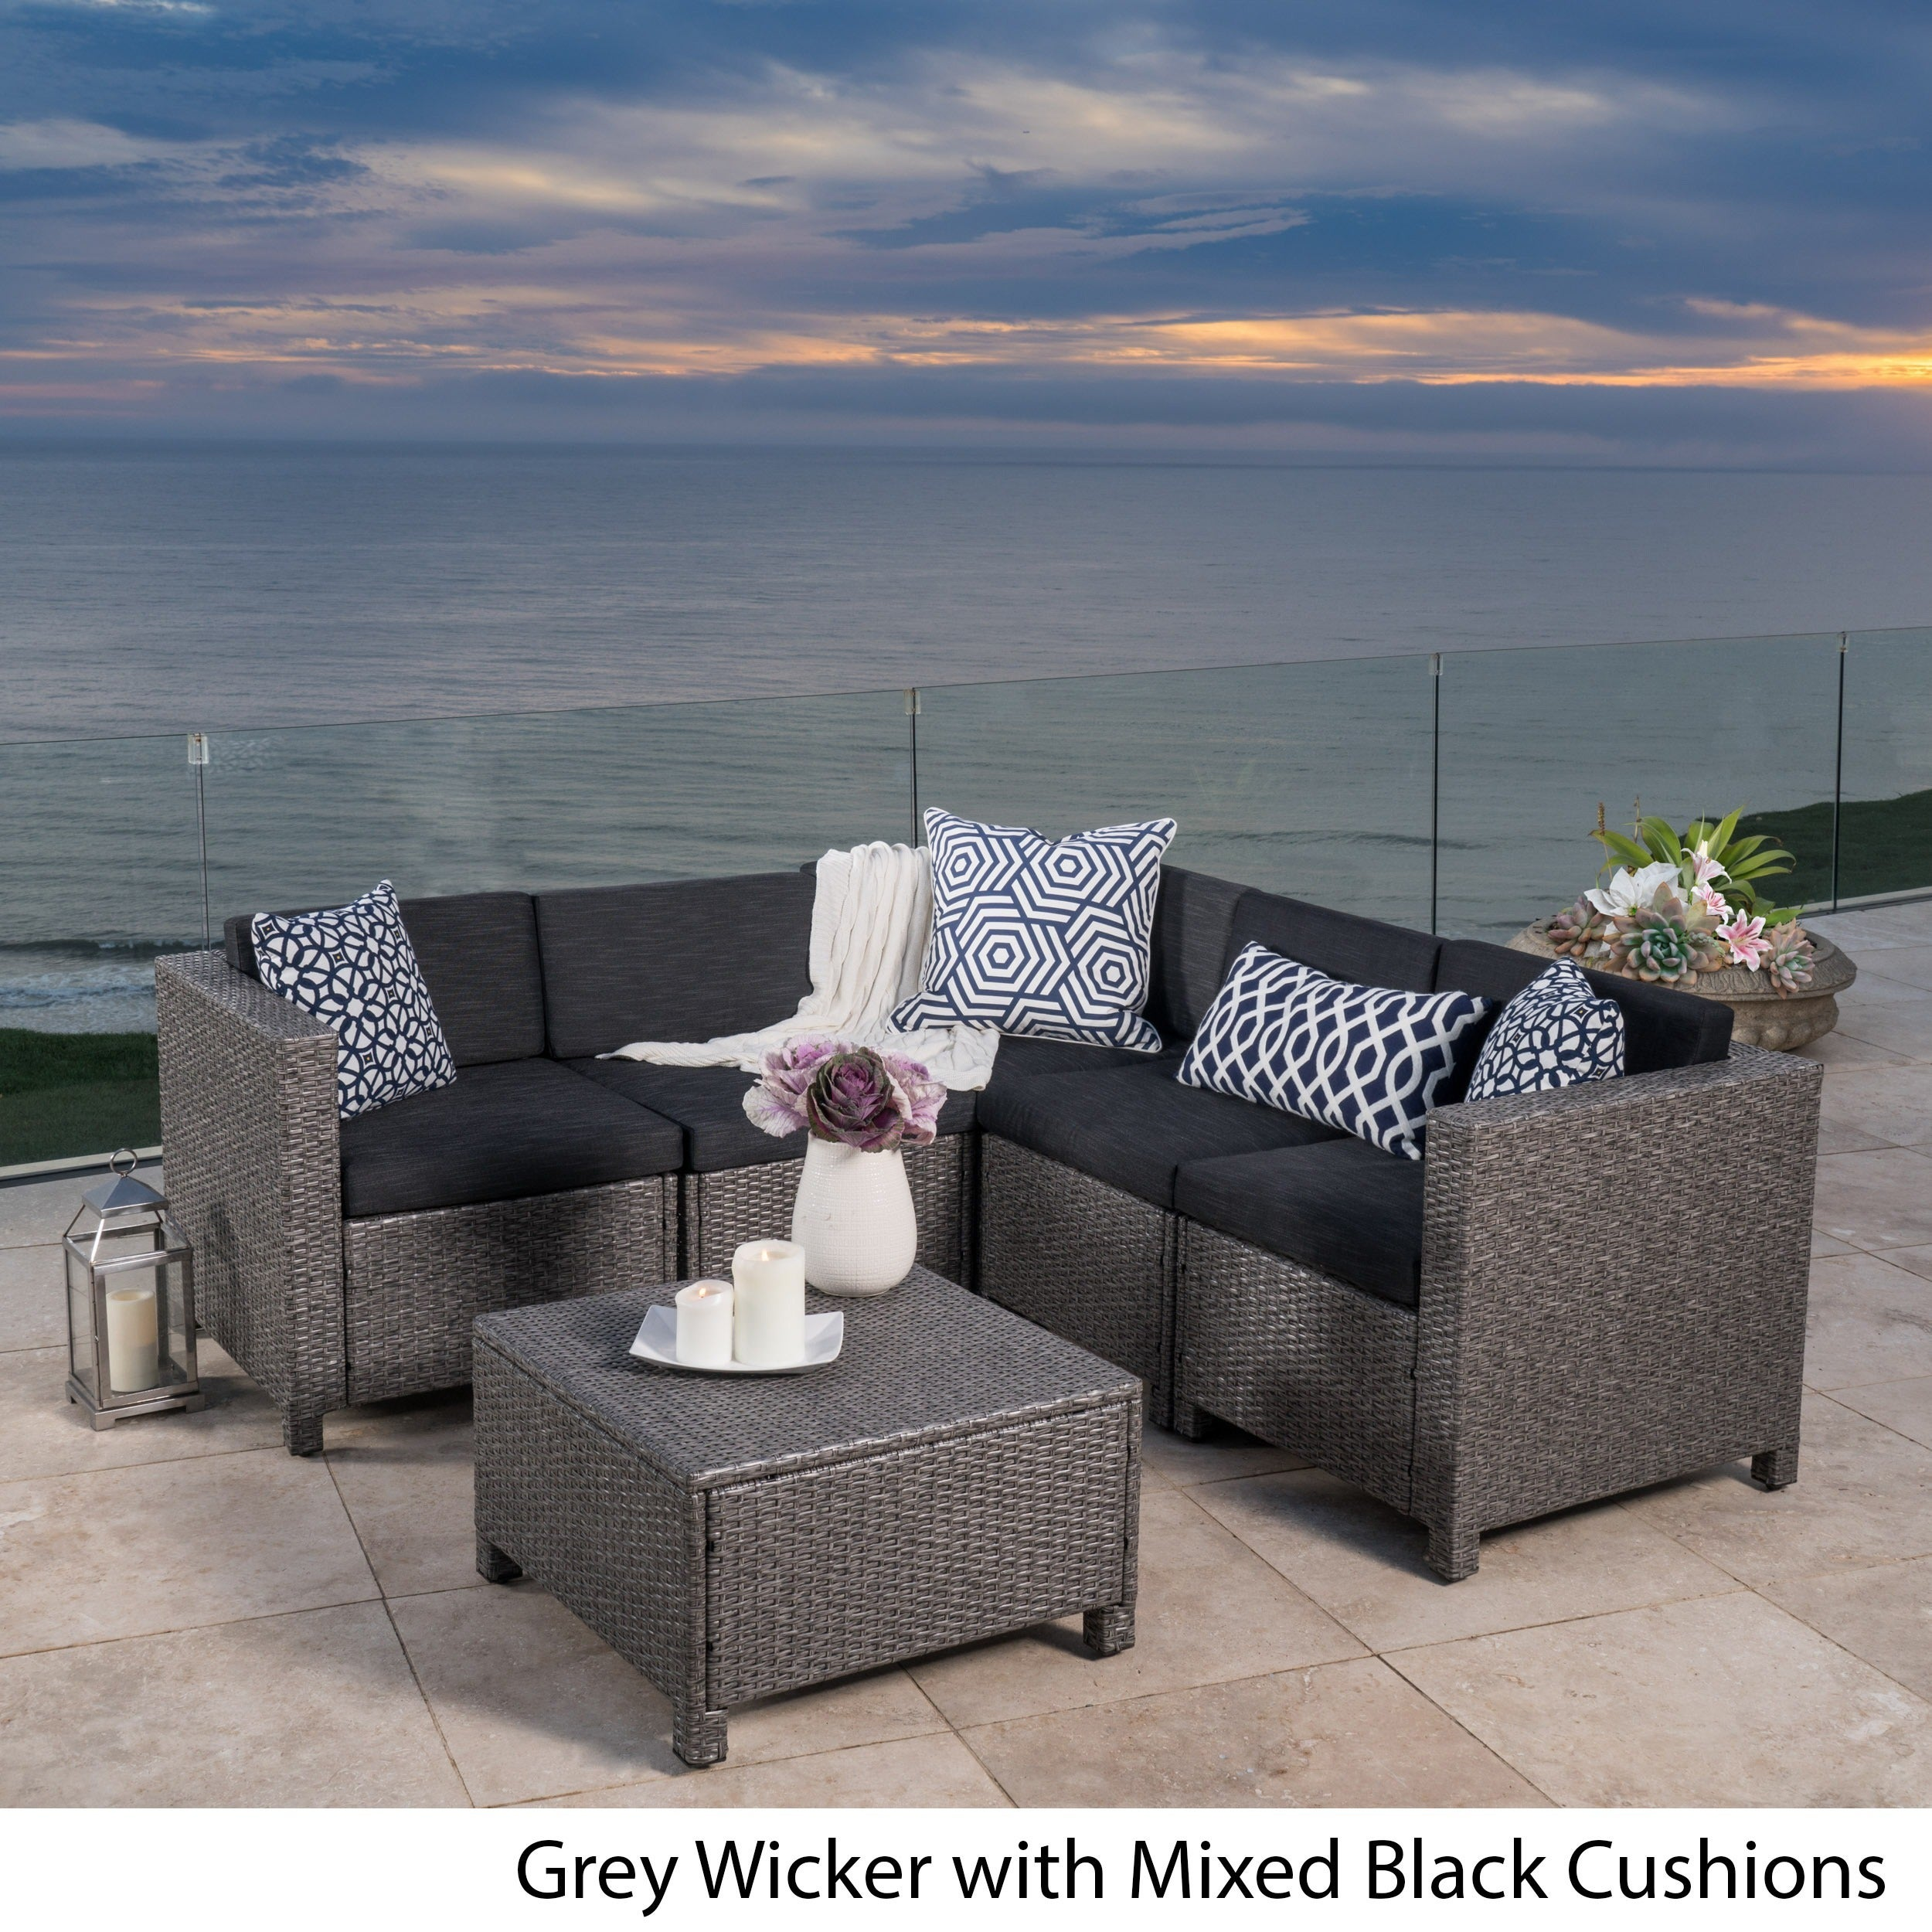 christopher knight home puerta grey outdoor wicker sofa set. Puerta Outdoor 6-piece Wicker V-Shaped Sectional Sofa Set By Christopher Knight Home - Free Shipping Today Overstock 19310596 Grey Overstock.com